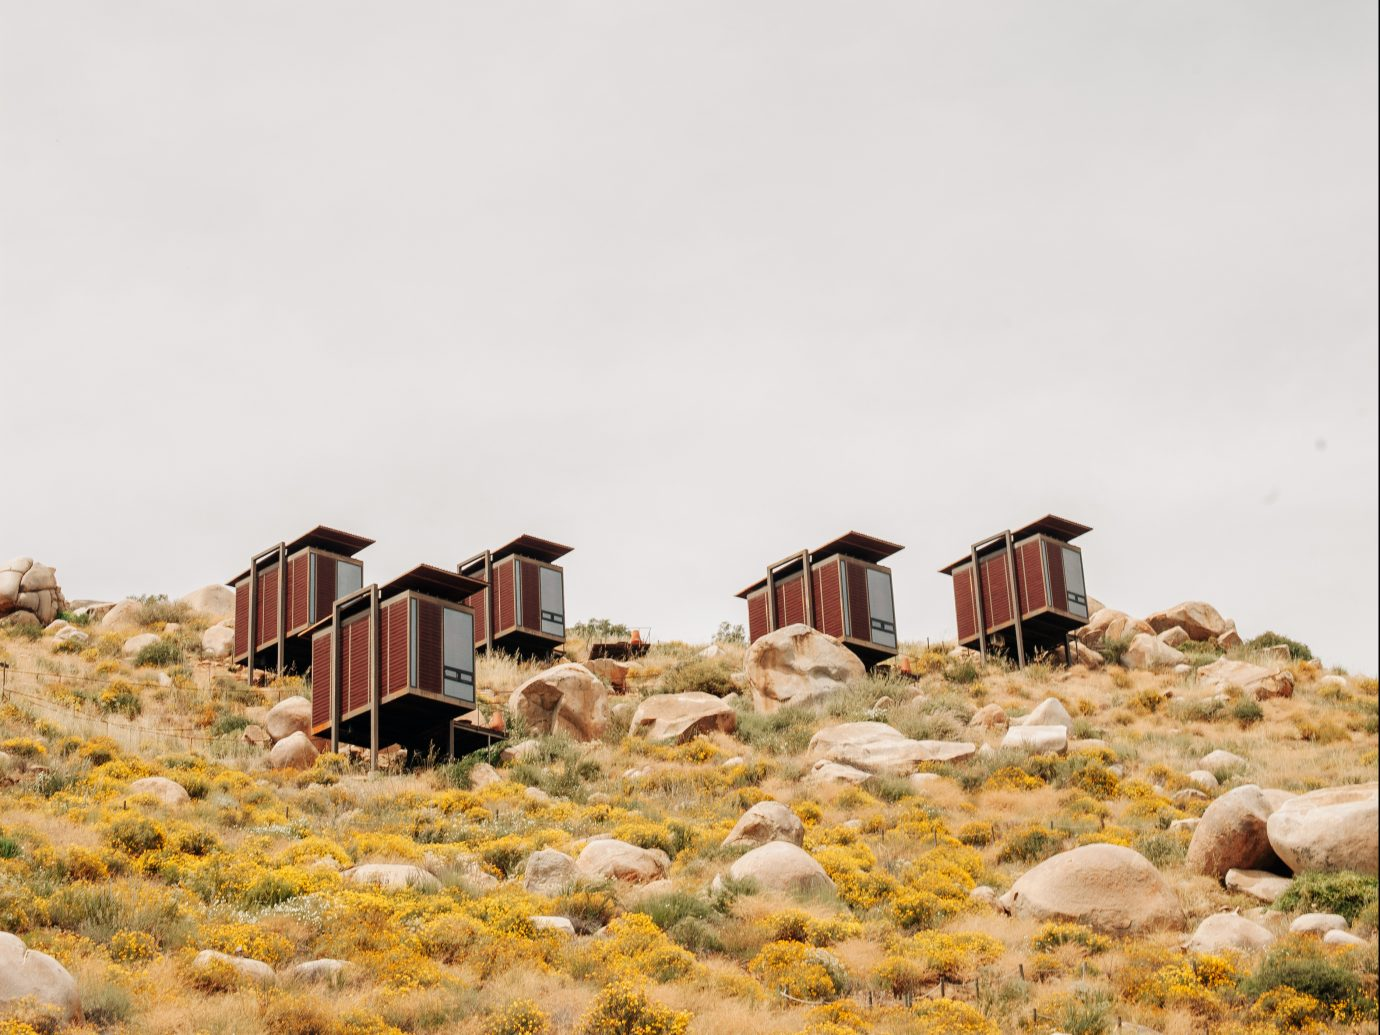 Small hotel room pods in the middle of a dry landscape